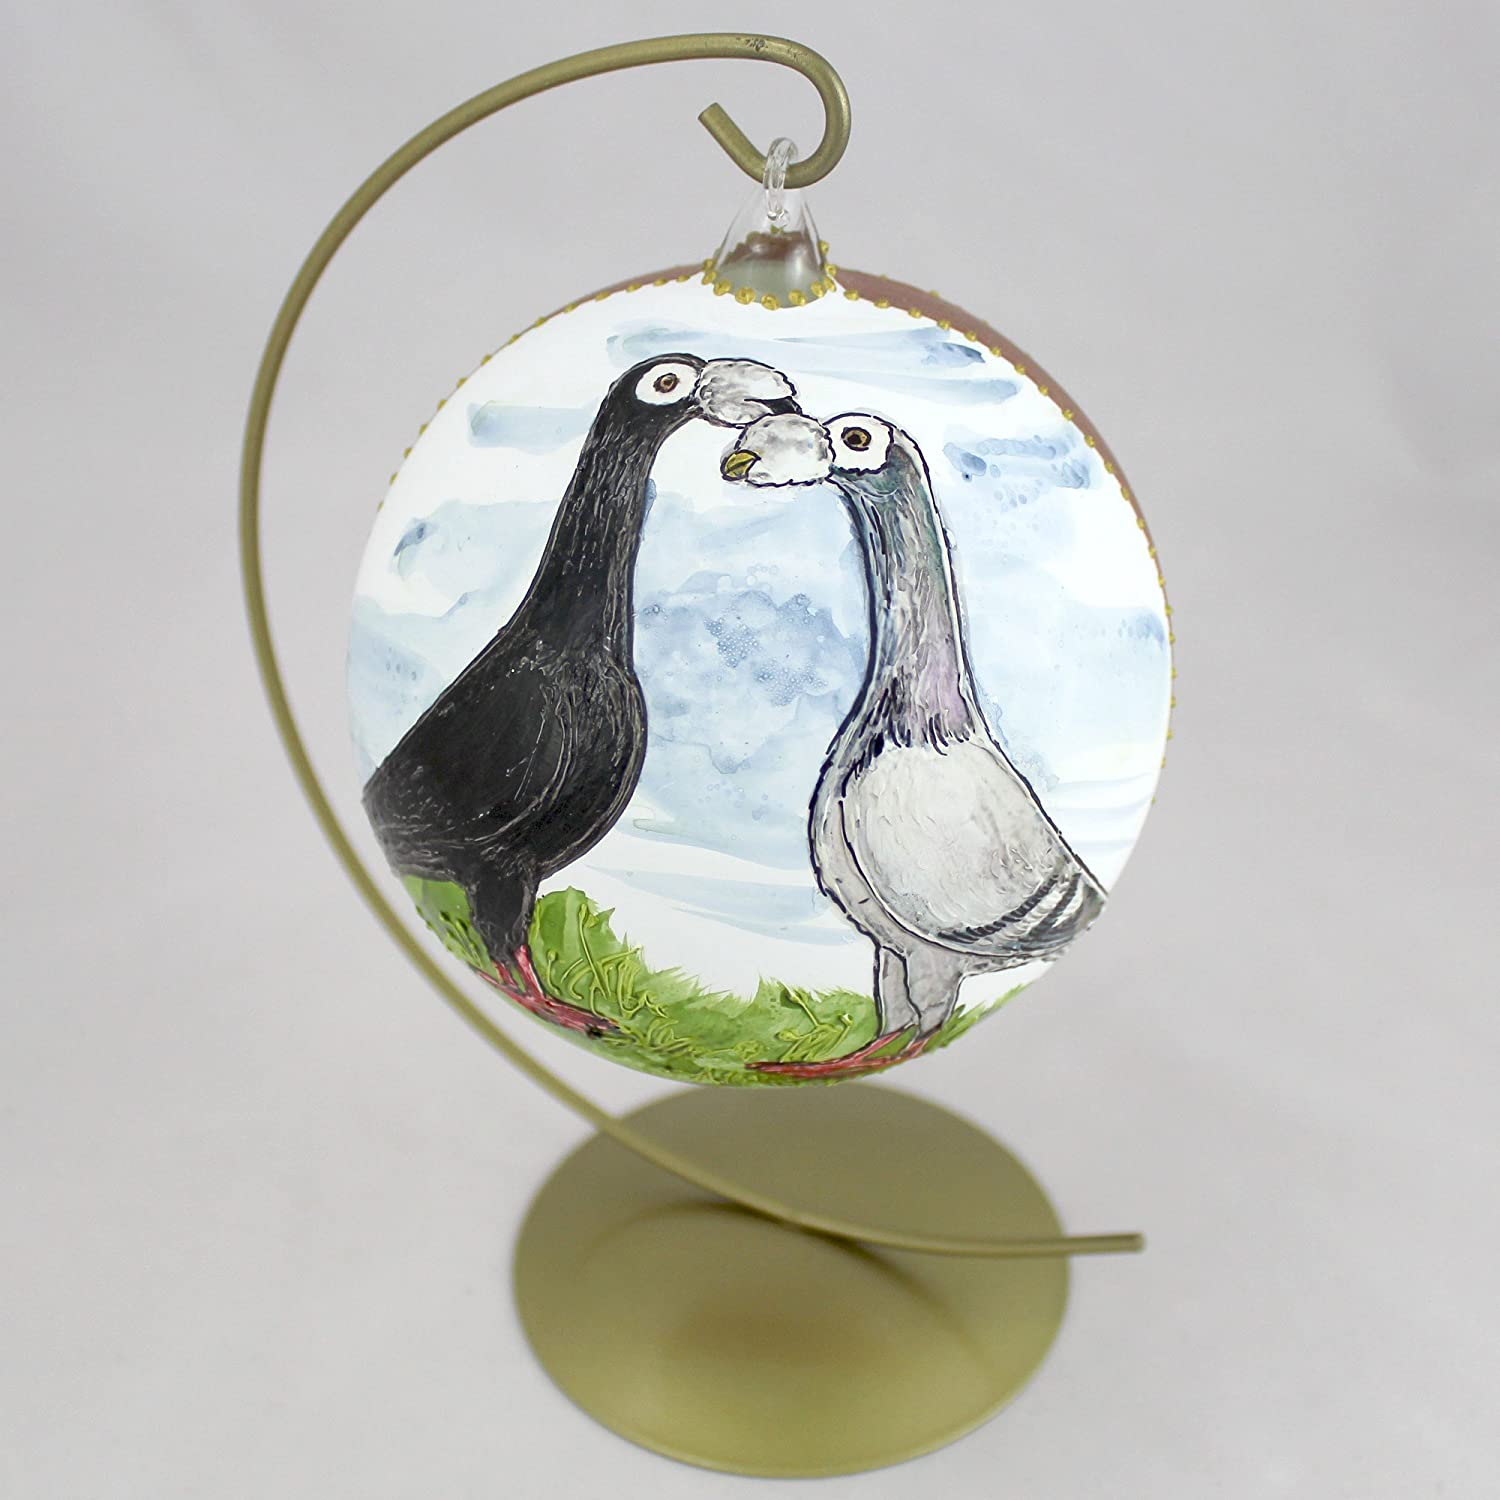 Carrier (second), bird bauble with stand limited edition ArtDog